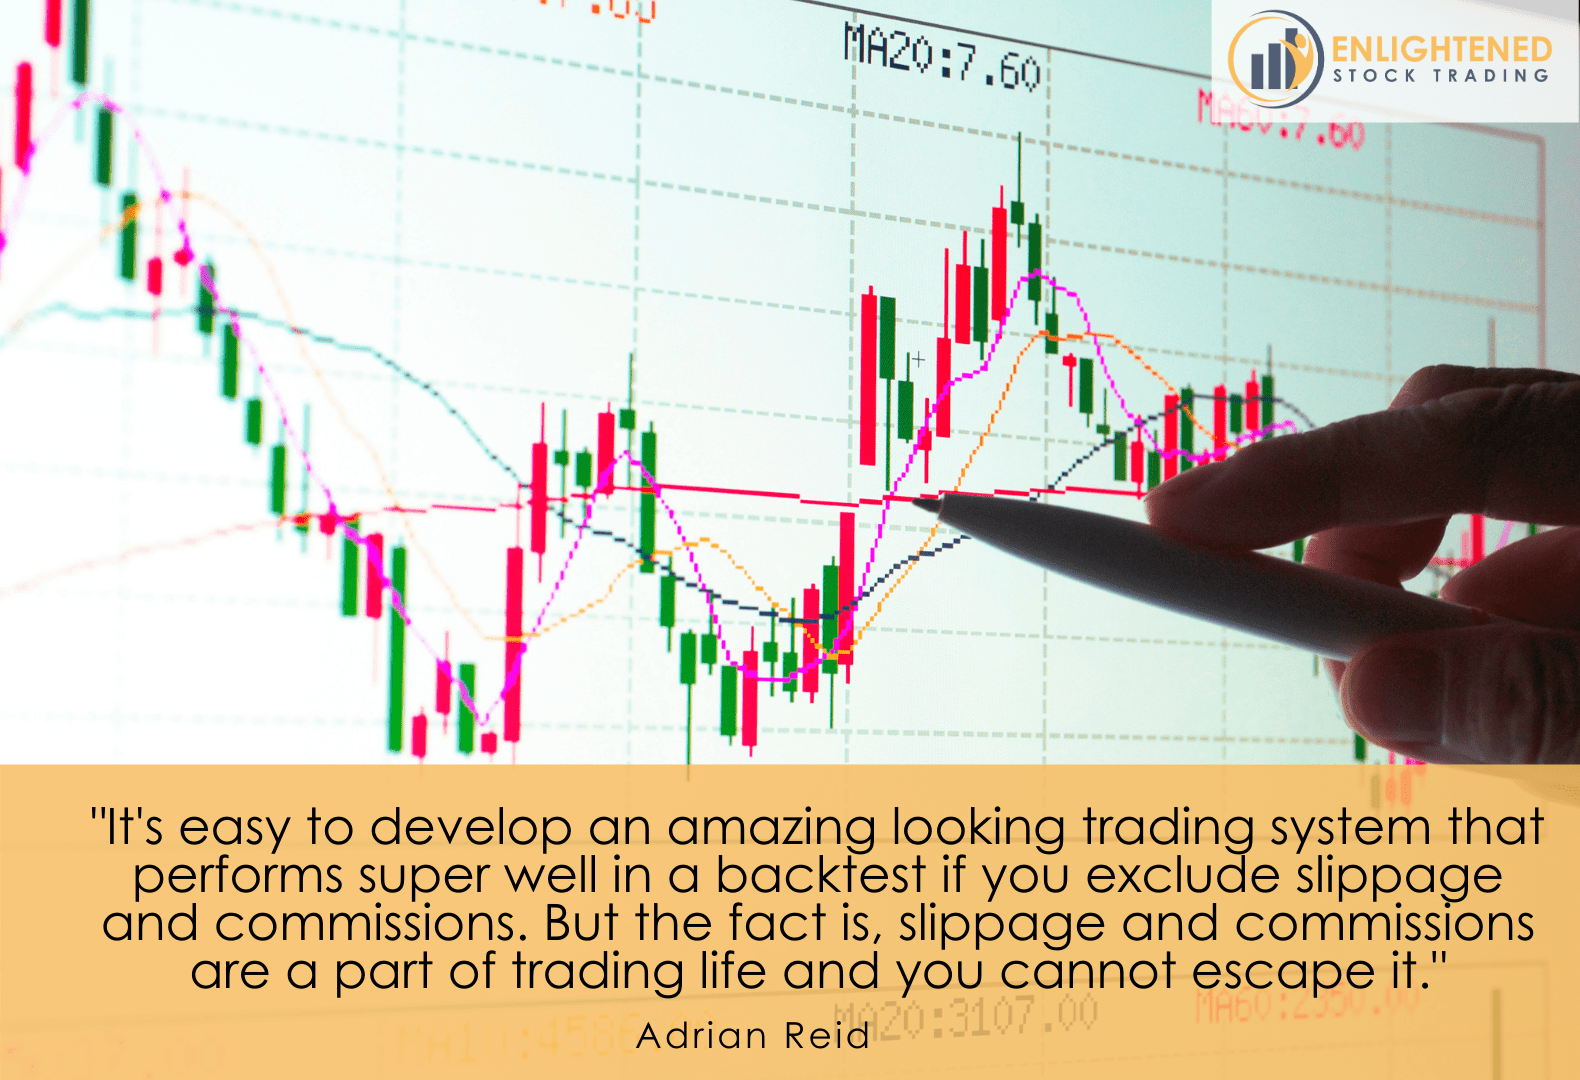 Backtest your trading system with slippage and commisison as they are unavoidable in real trading